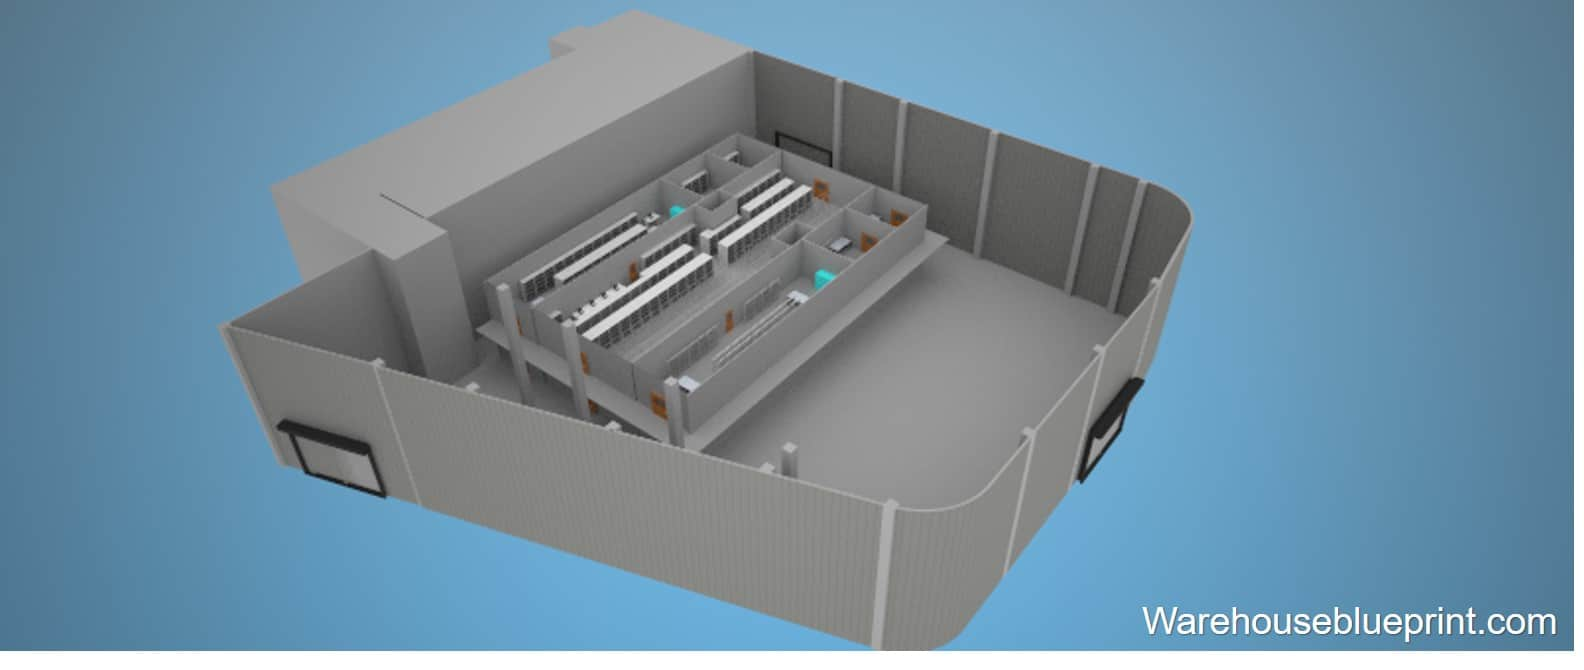 Warehouse Layout 13 - rendered